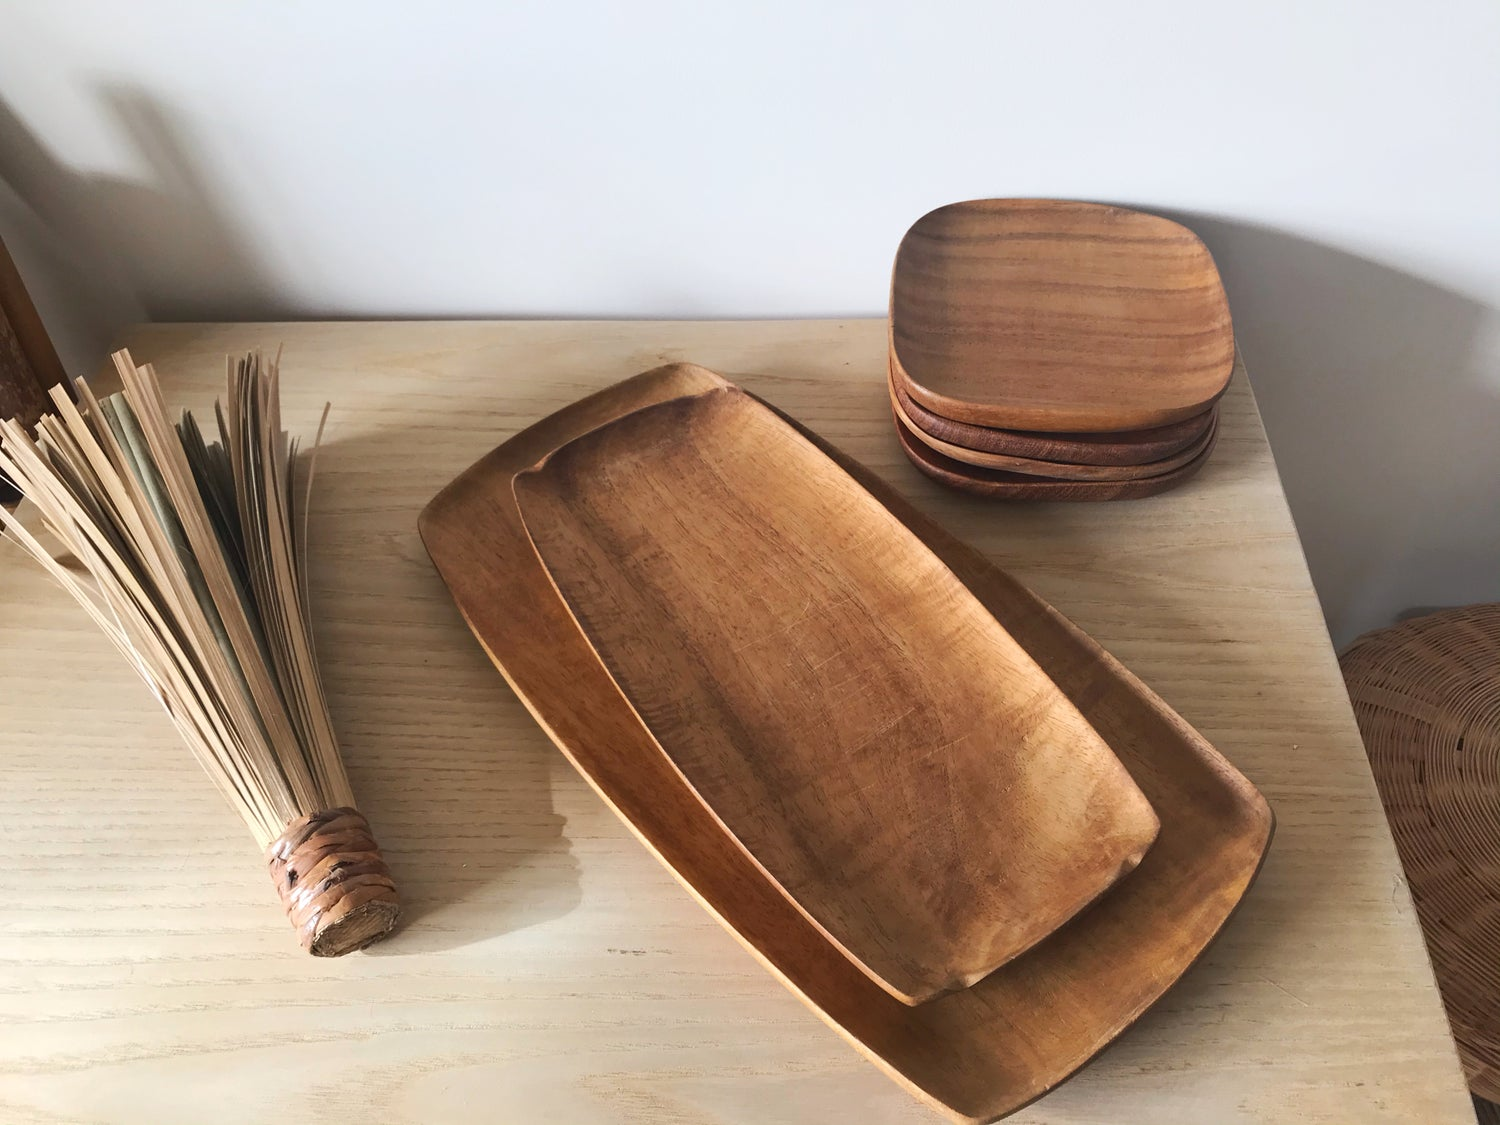 Image of Small and Medium Mid Century Modern Wooden Serving Trays